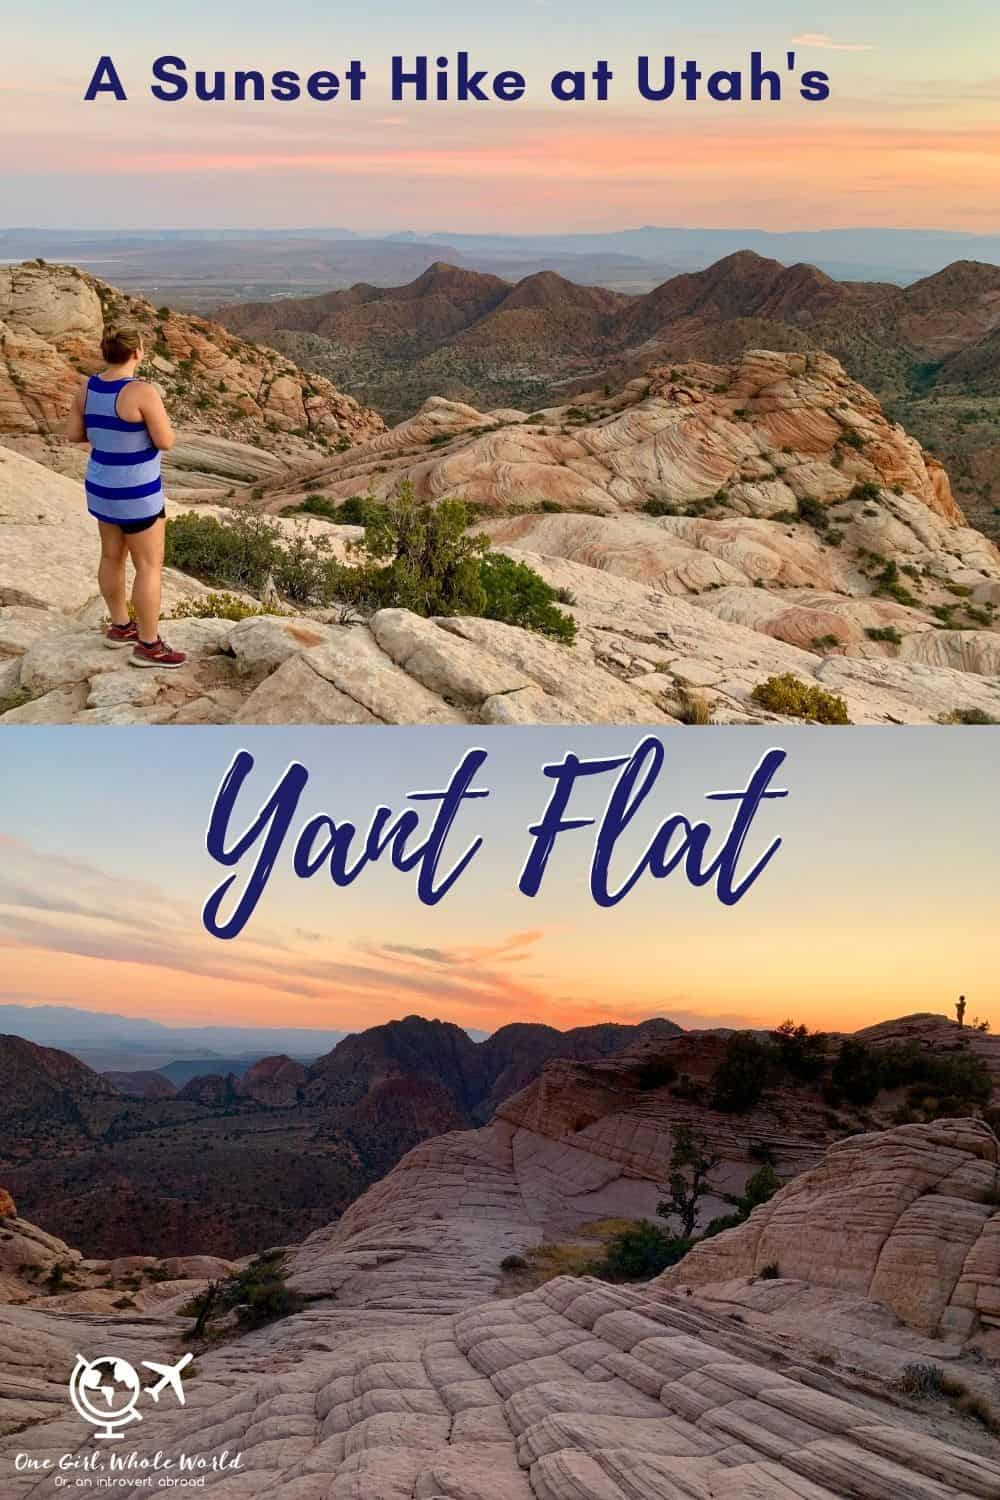 Sunset Hike at Utah's Yant Flat & Candy Cliffs | This beautiful hike near St. George, Utah, is a must if you have a vehicle with 4WD. The hike itself is fairly easy, and at sunset it's stunning. An alternative to Arizona's famous Wave, Utah hiking options, hiking St. George Utah, what to do in St. George. #utah #hiking #stgeorge #yantflat